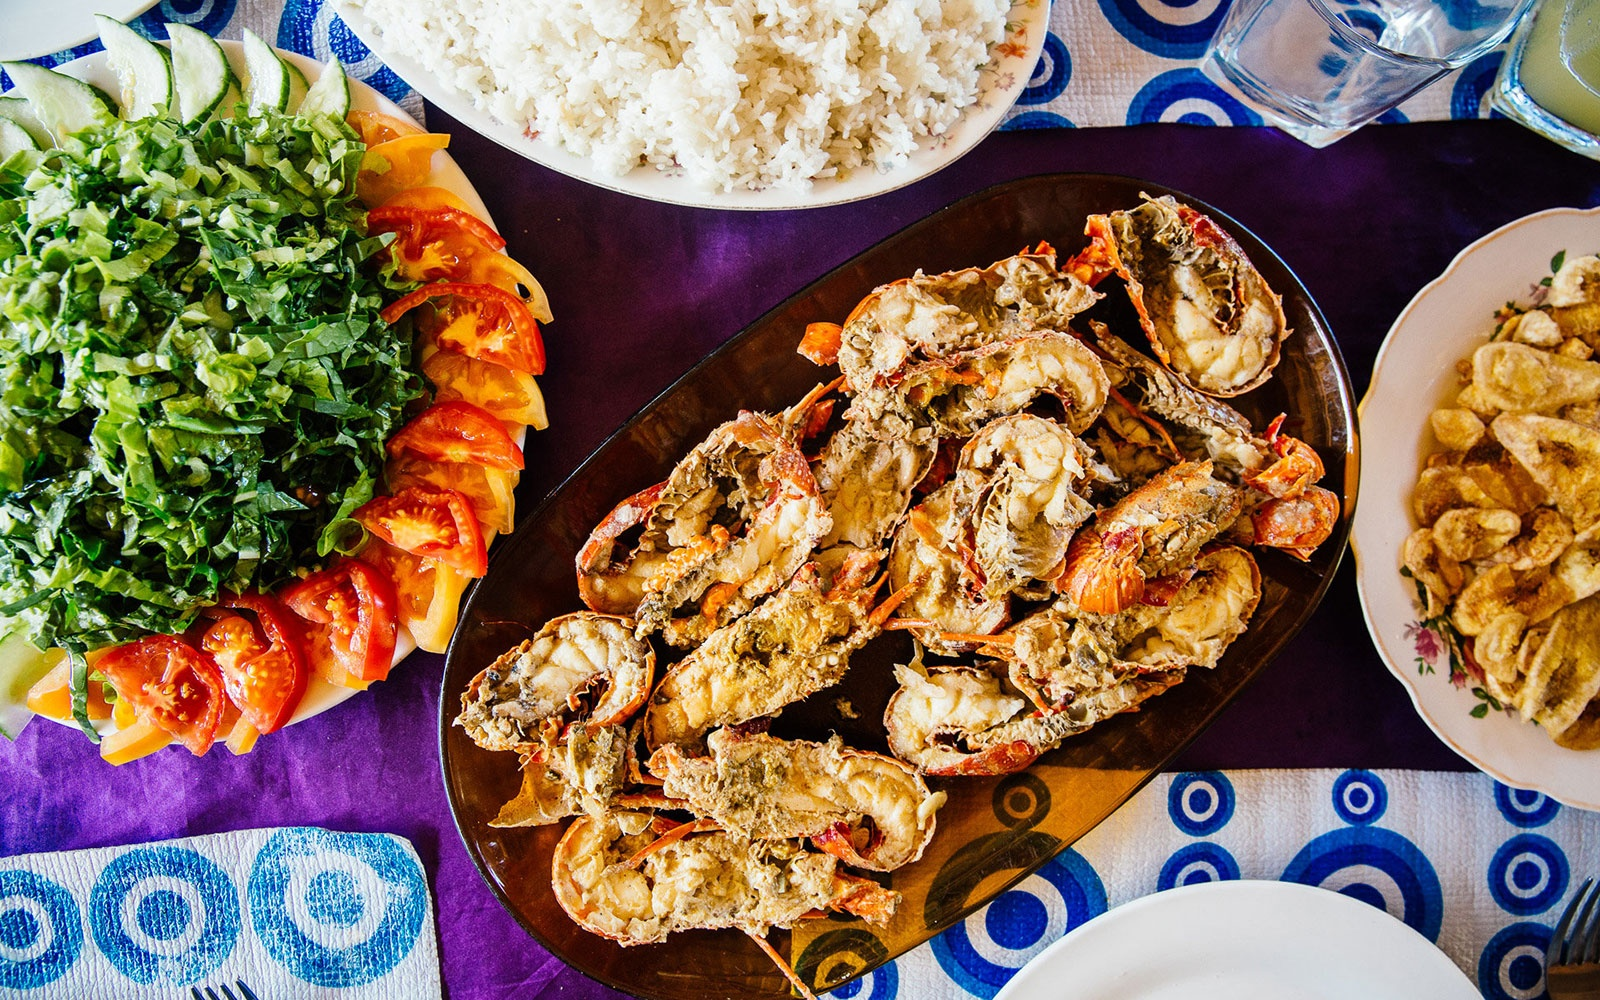 In Baracoa: Eat As Much Seafood As You Can Handle